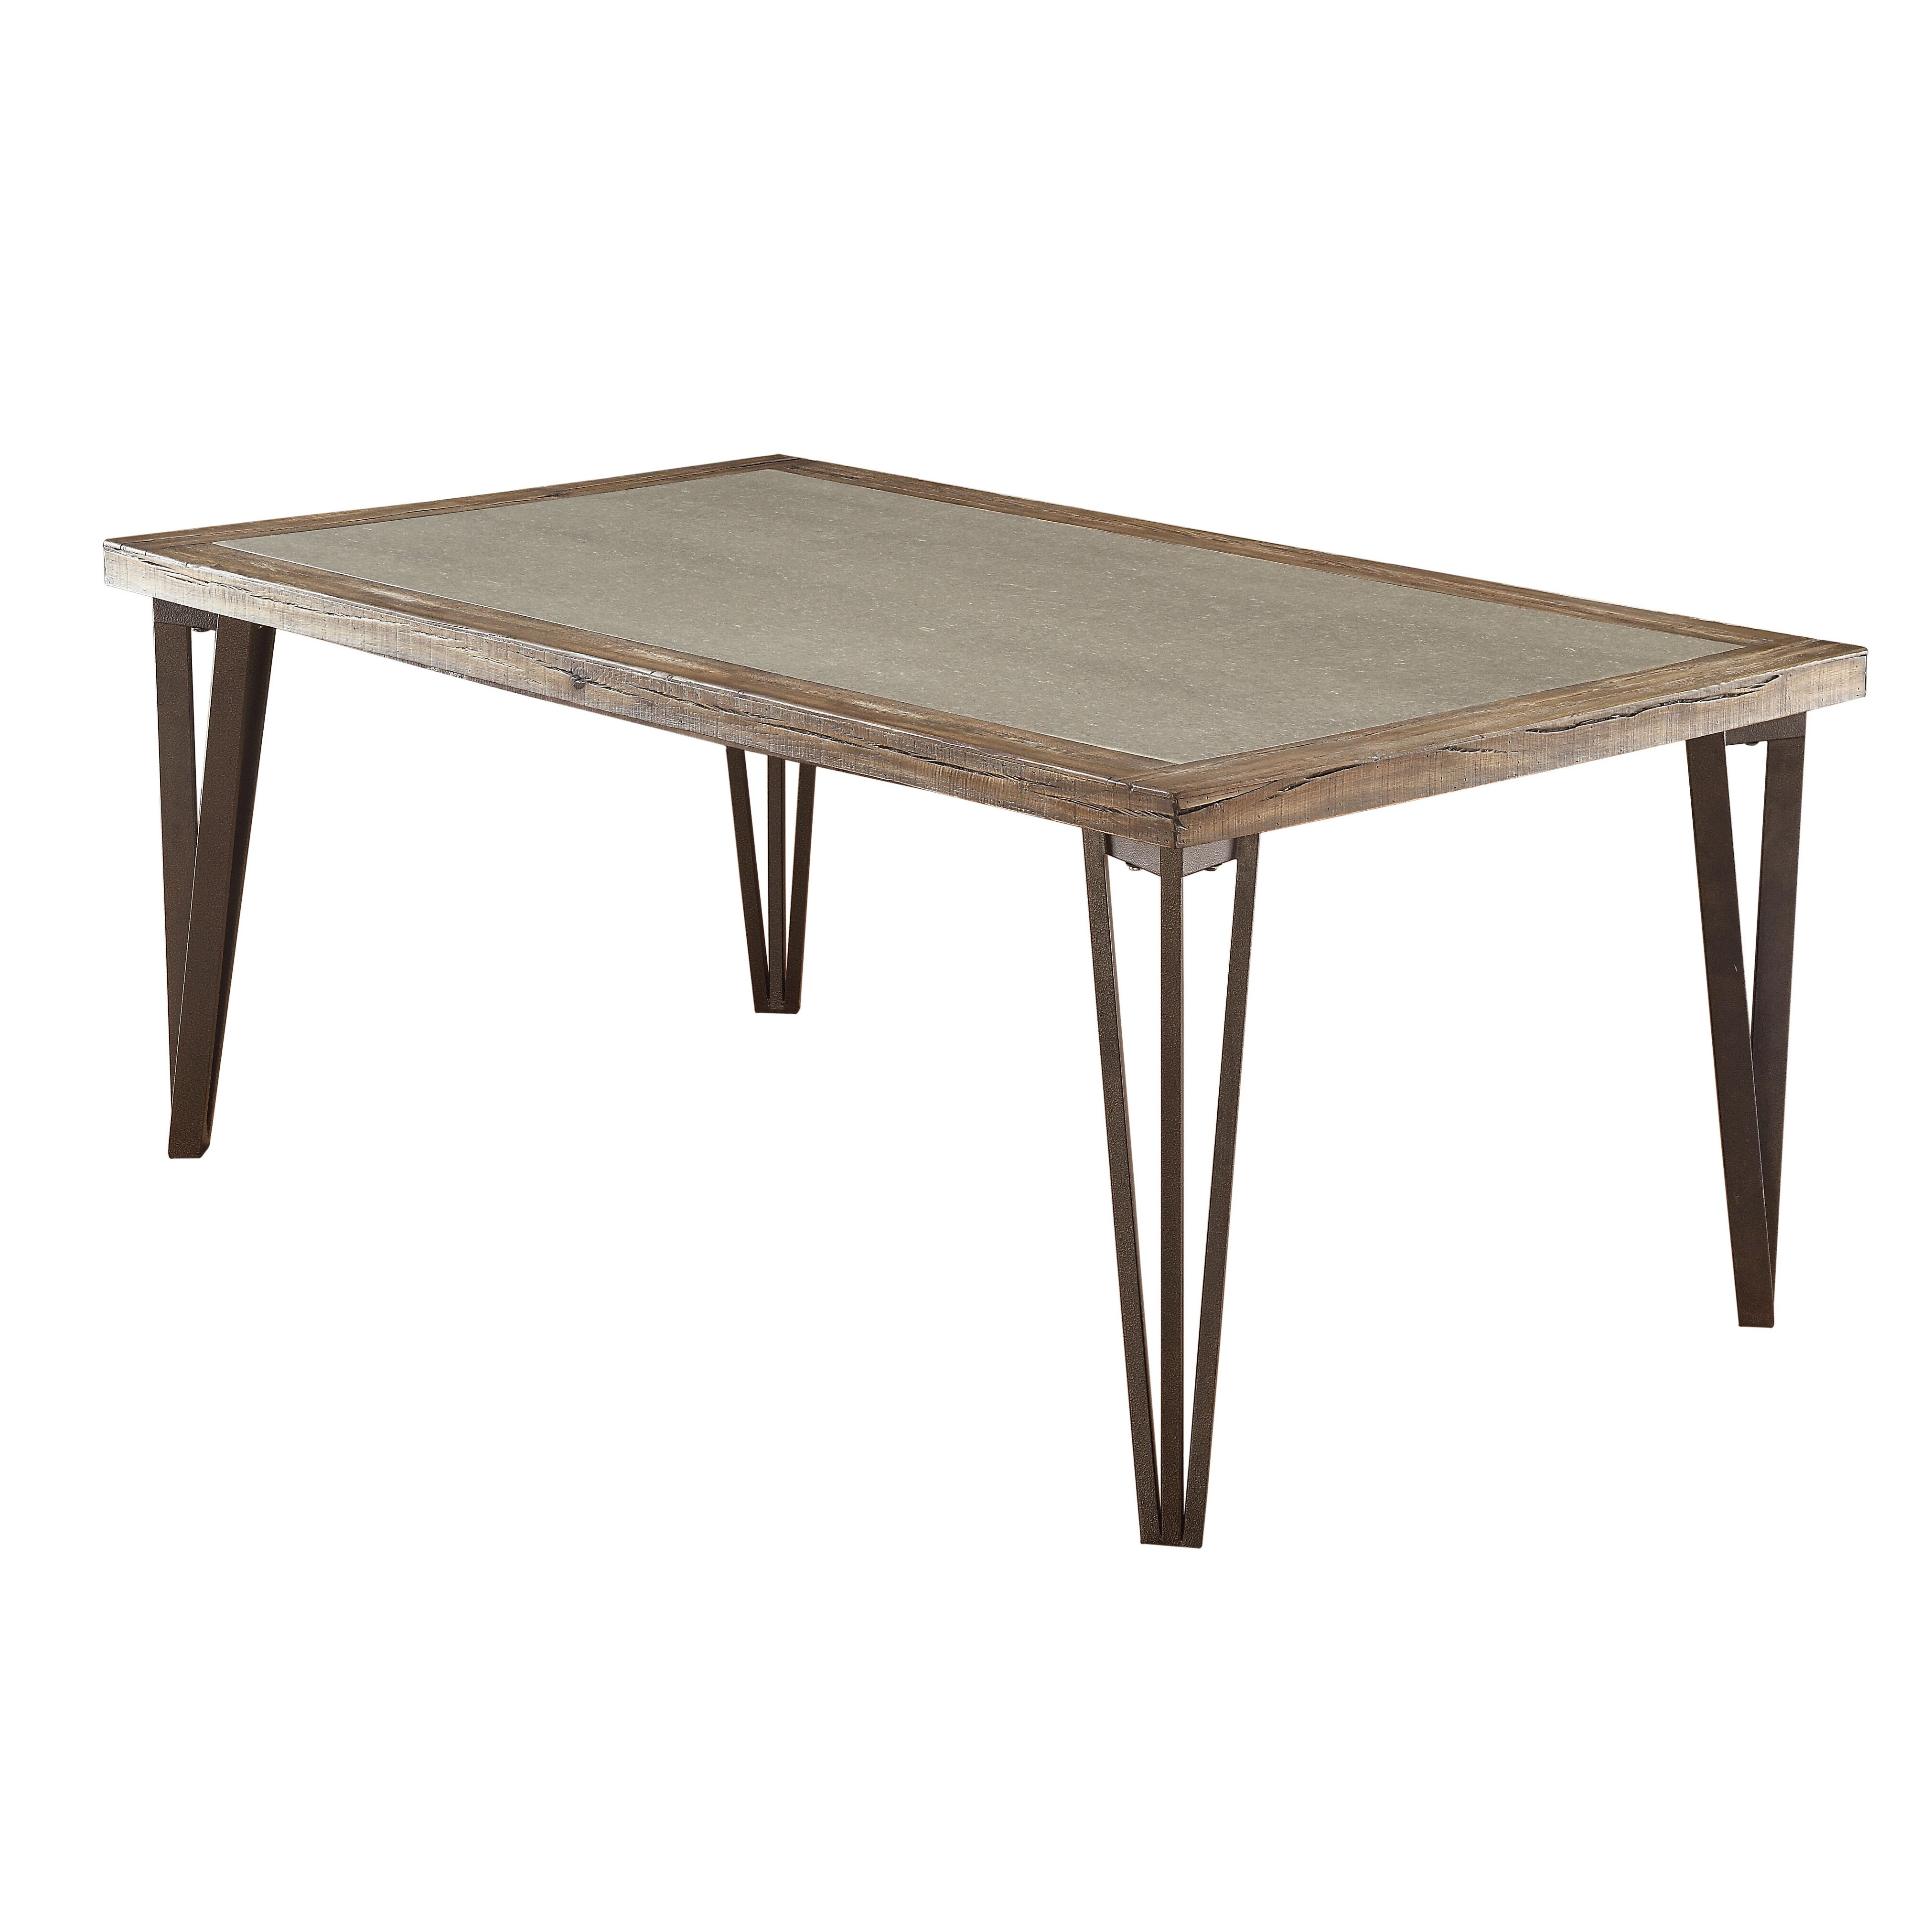 Canora grey suttons dining table reviews for Wayfair dining table